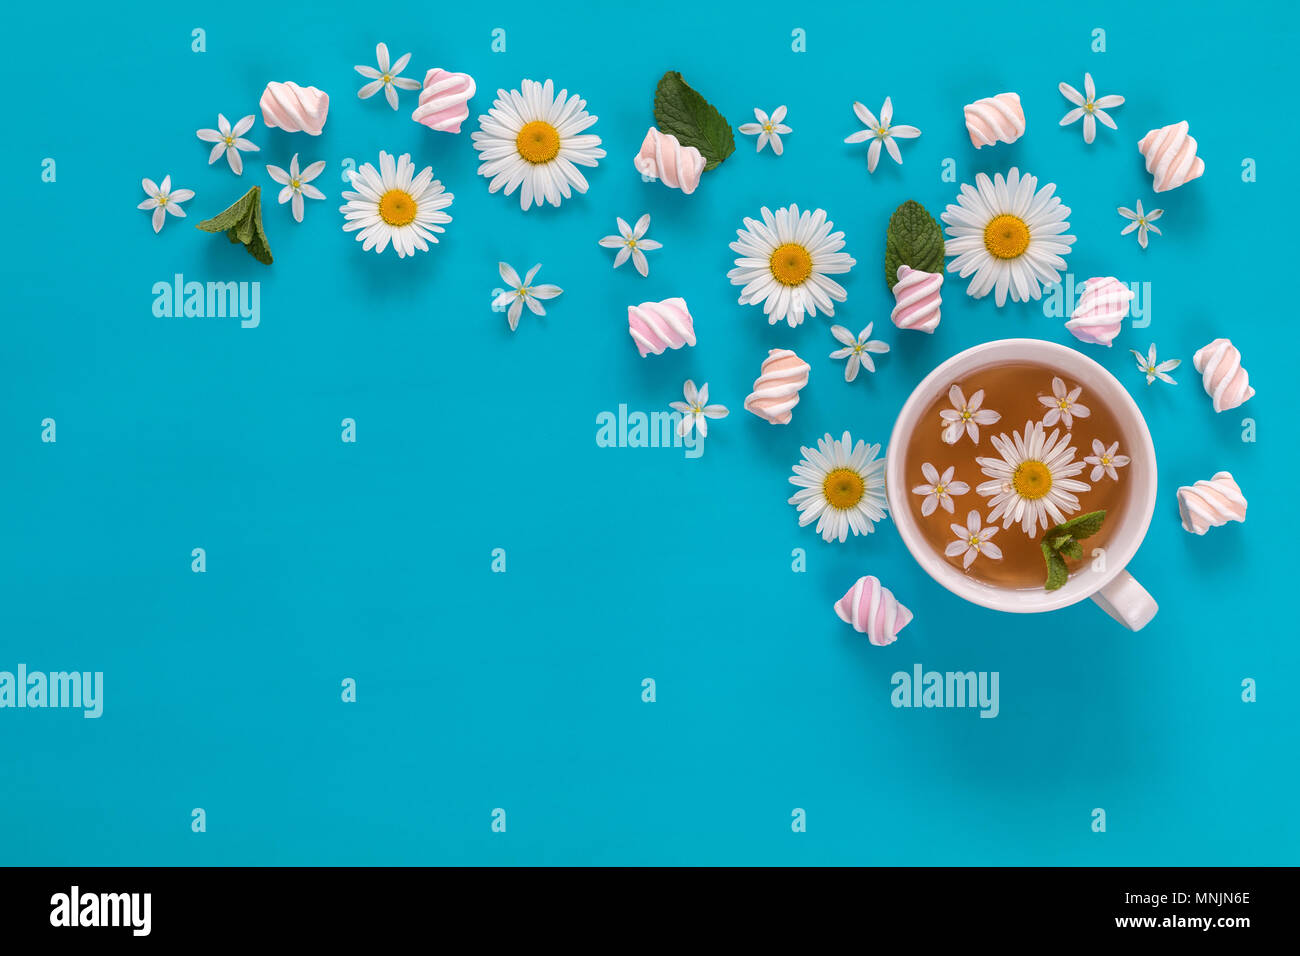 Cup of tea with marshmallows and flowers blossom  bouquets on blue surface. Flat lay, top view sweet food floral background. - Stock Image